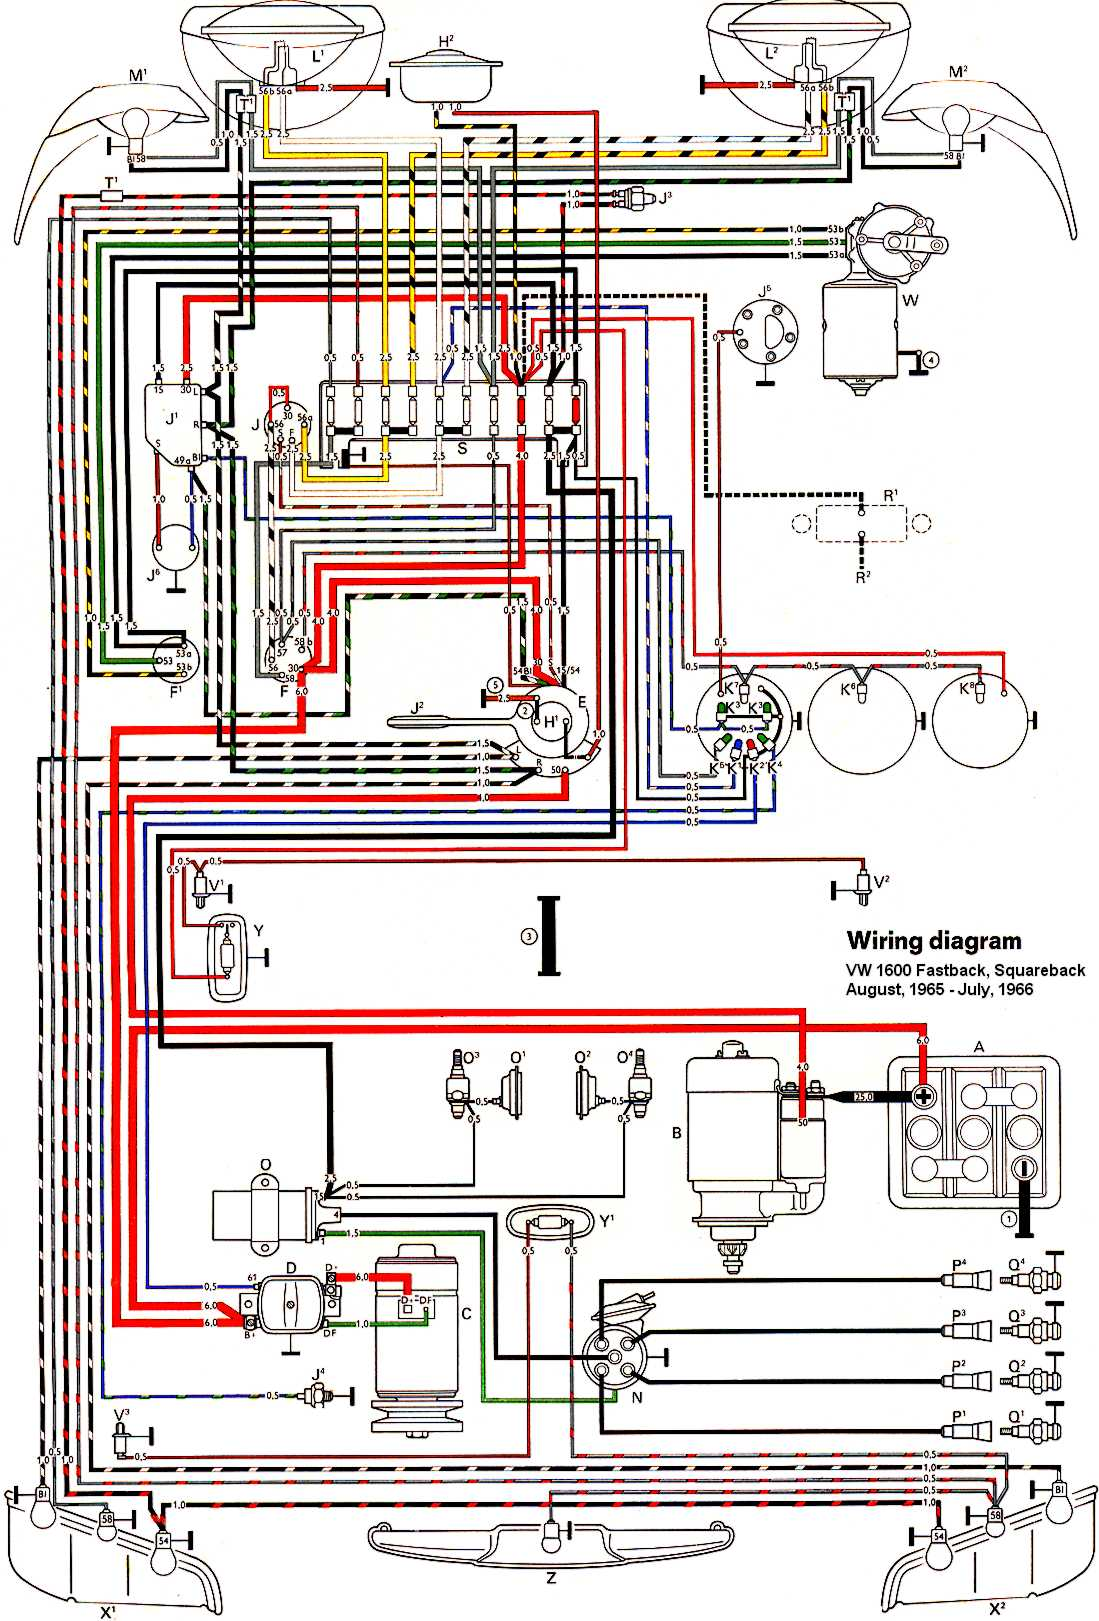 type3_1600_66 thesamba com type 3 wiring diagrams modem wiring diagram at mifinder.co